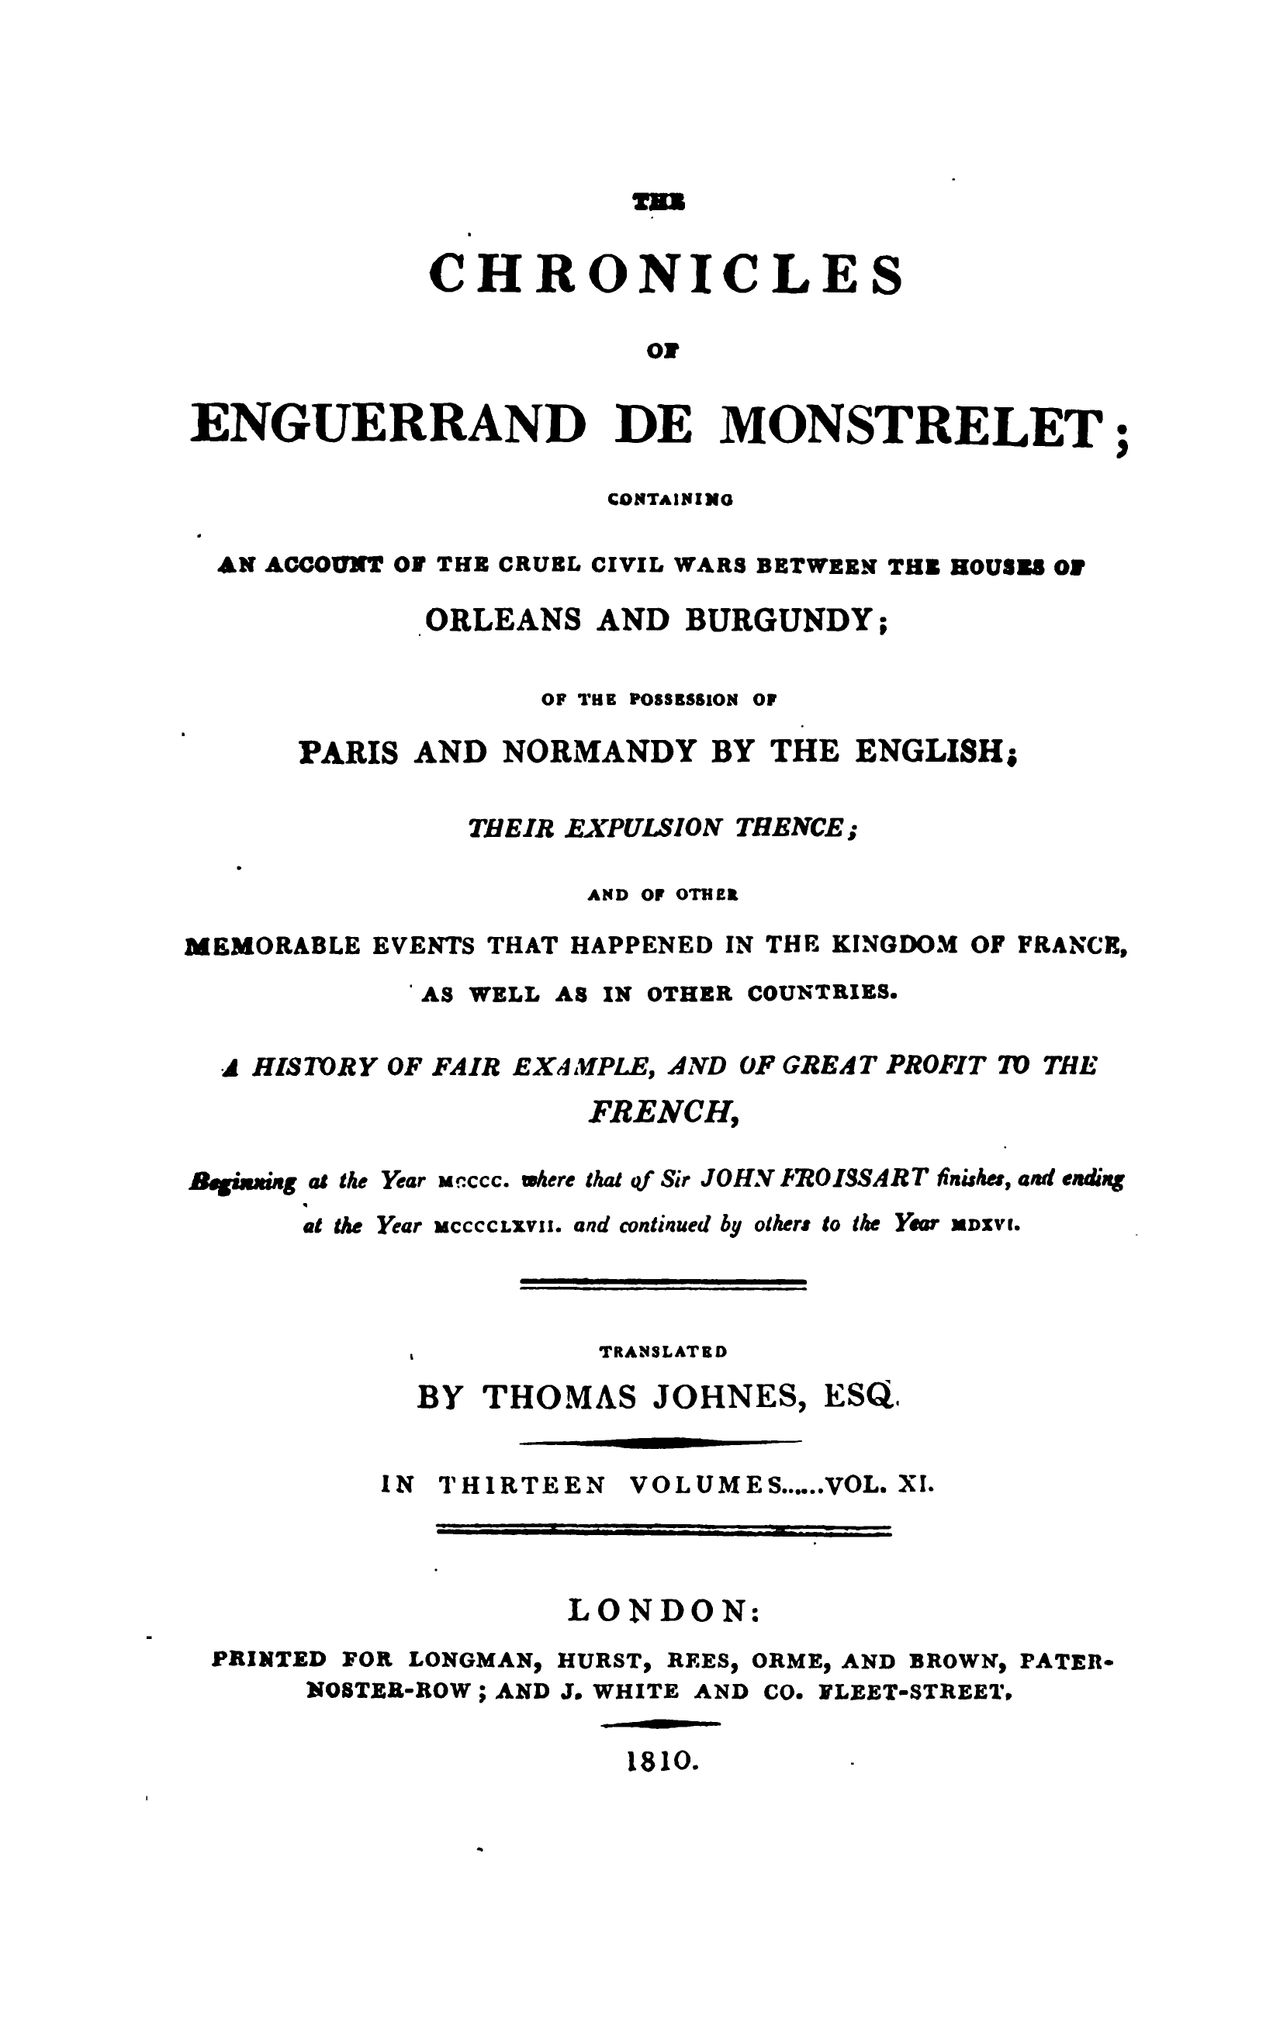 Enguerrand de Monstrelet chronicle vol.11